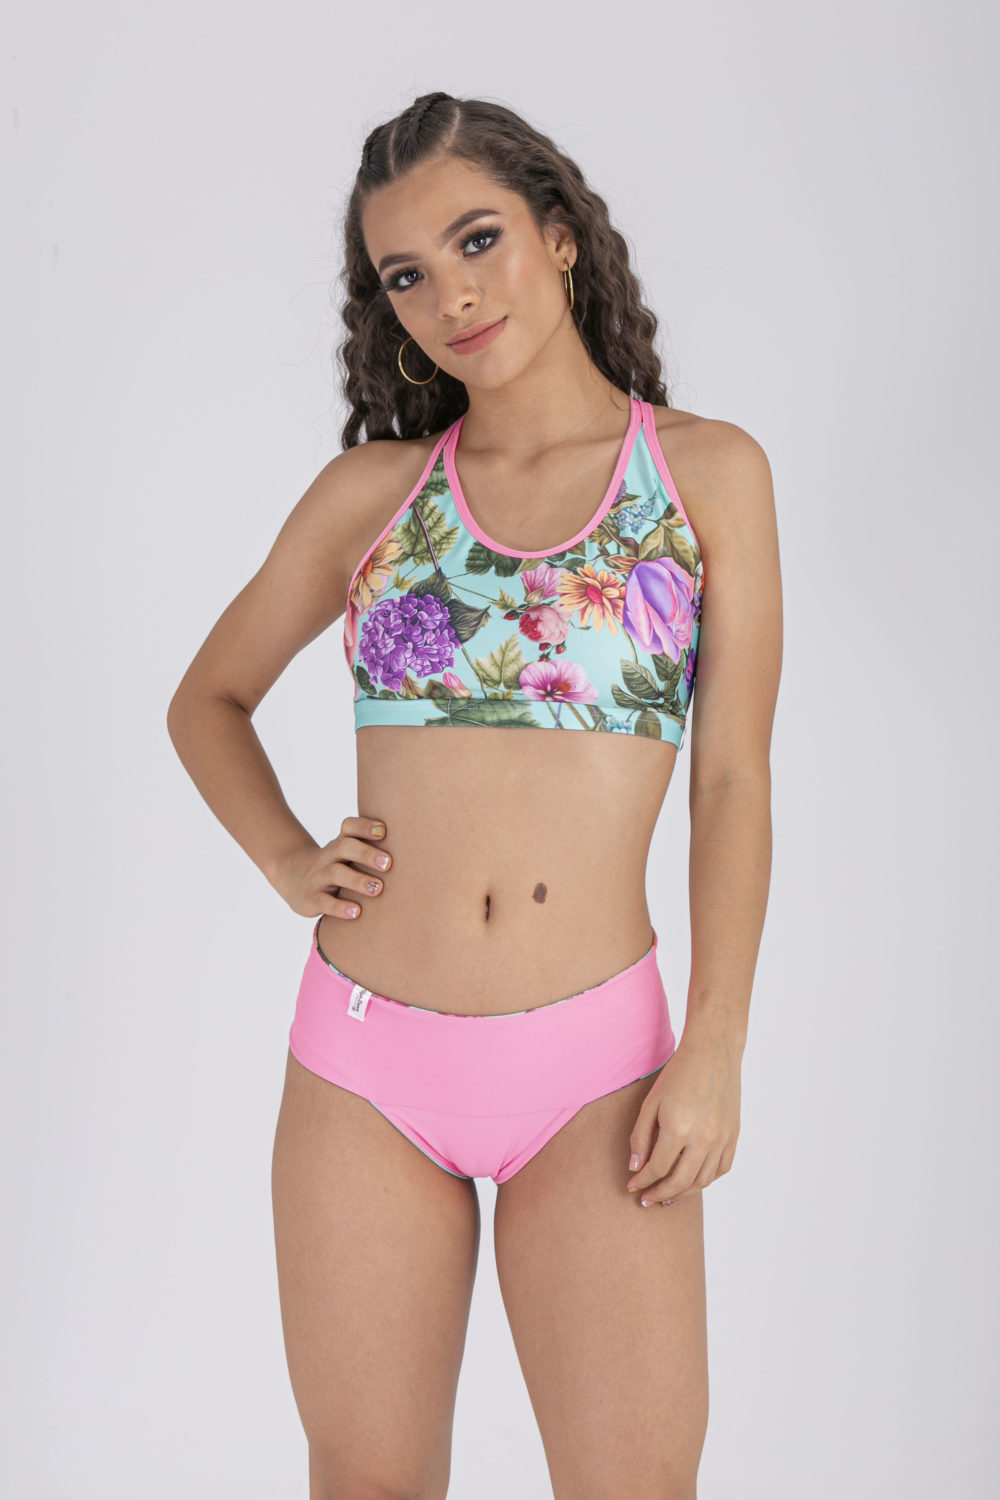 BEST POLE BRAND POLE CLOTHES ACTIVE WEAR SWIM WEAR